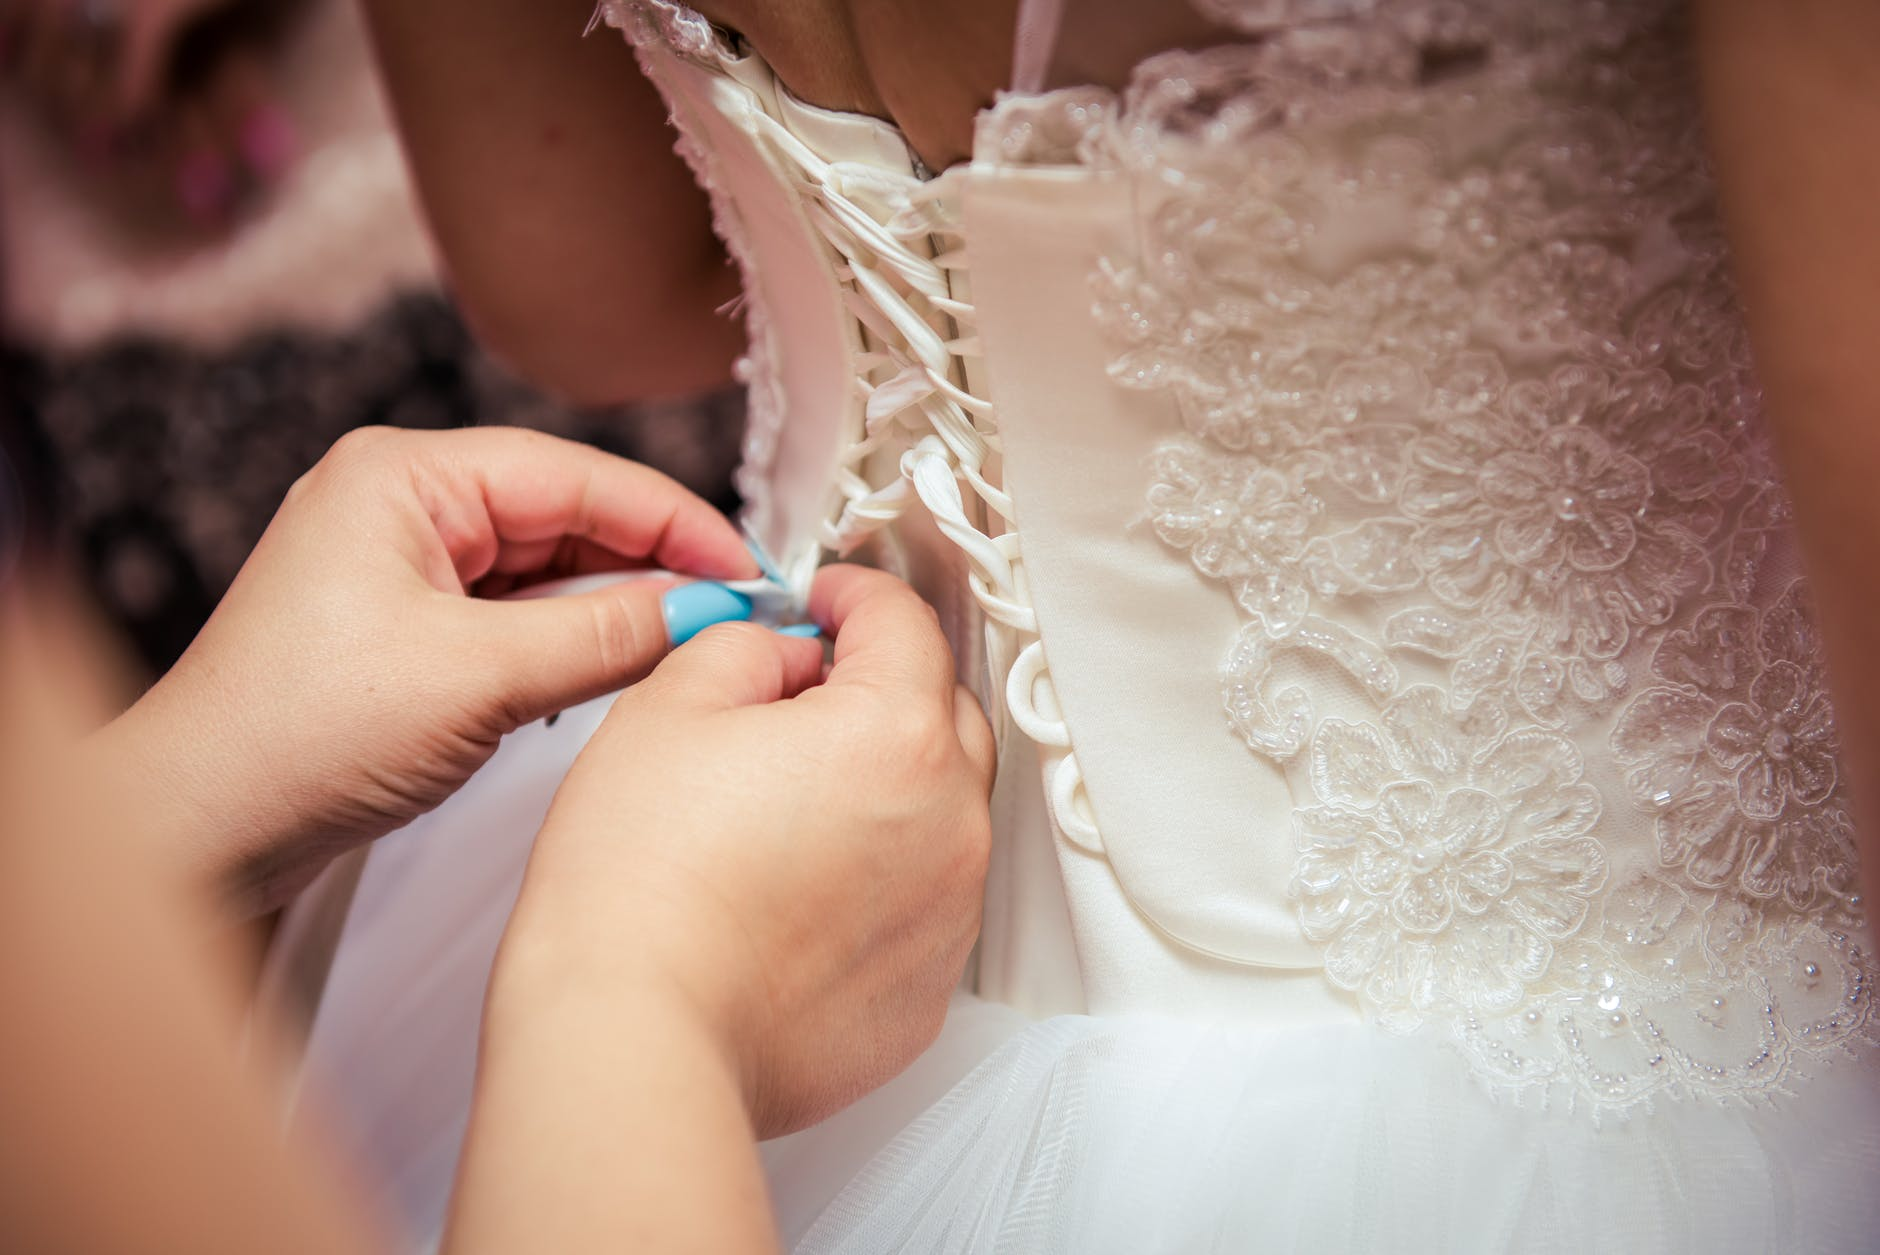 Bride getting fastened into her dress